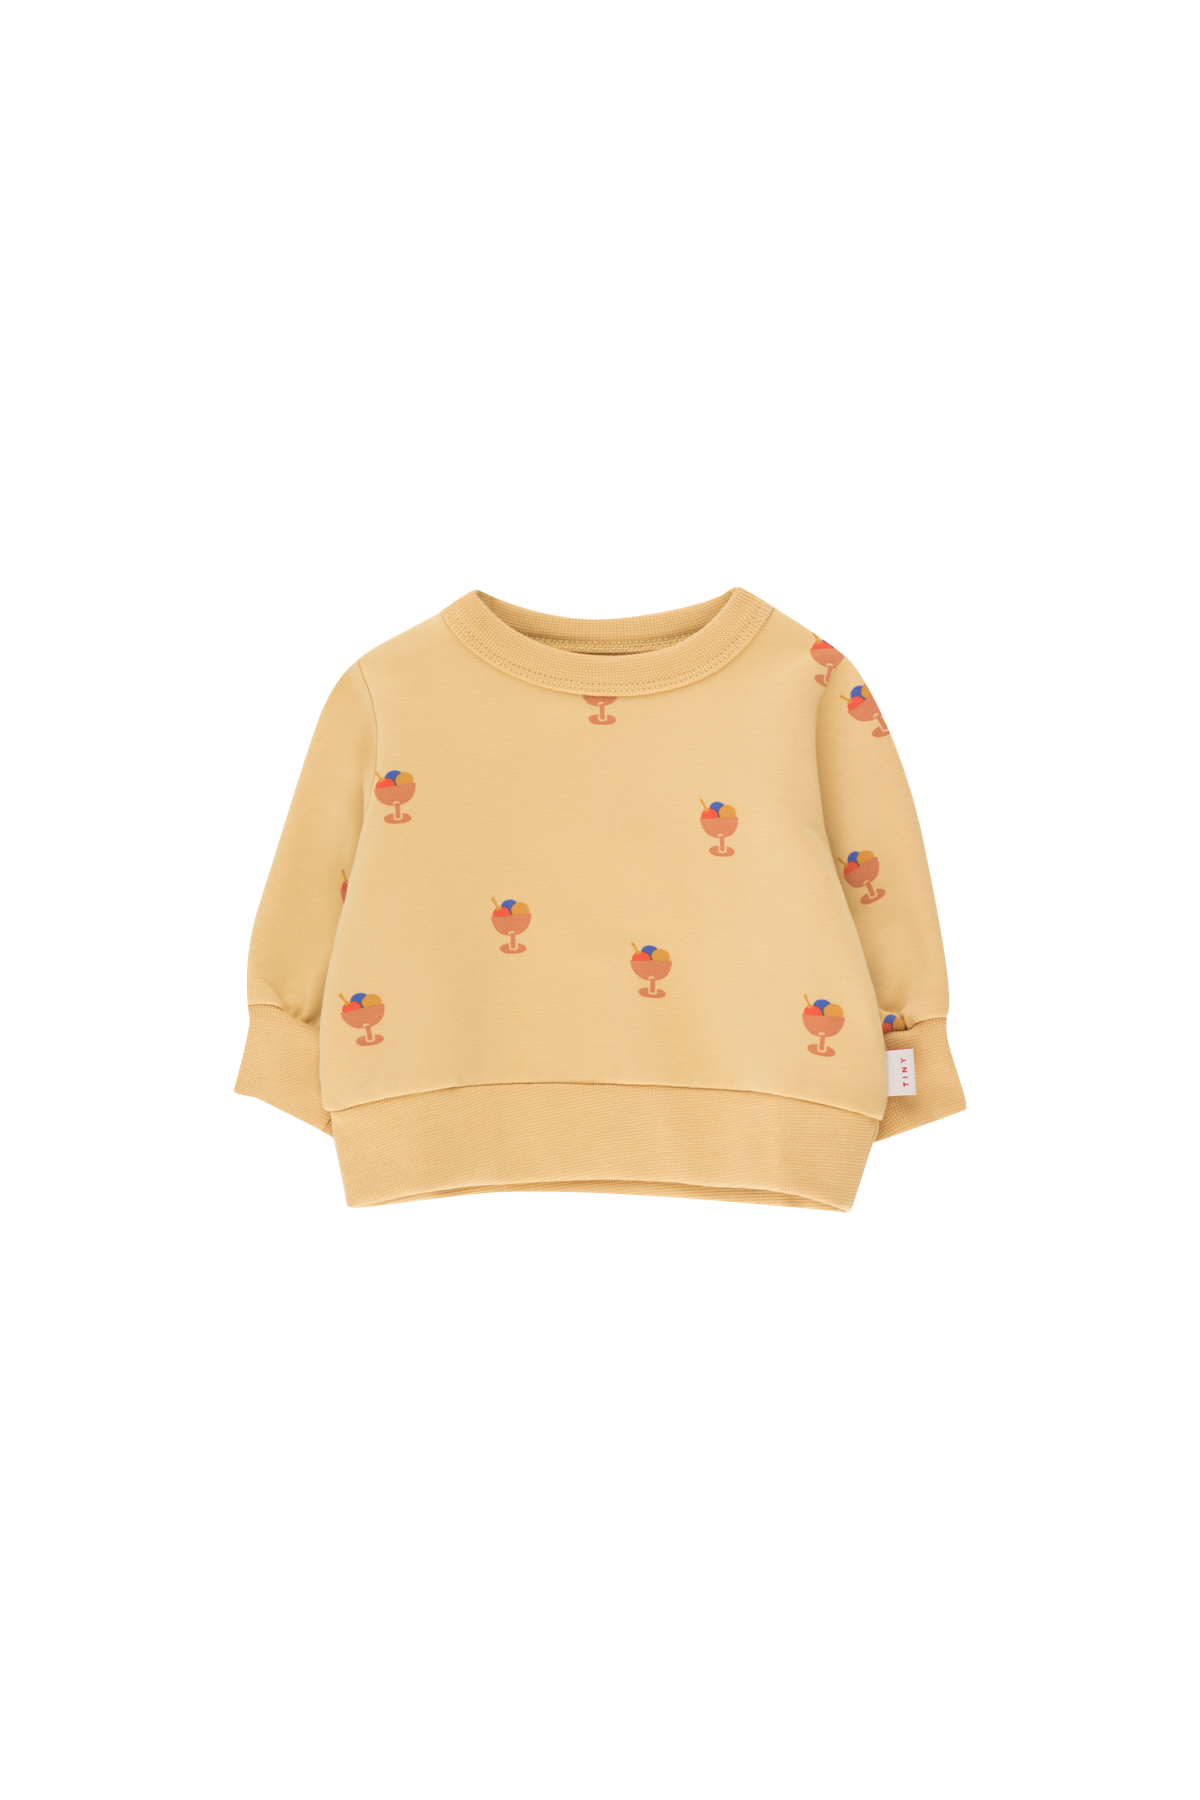 tinycottons ice cream cup baby sweatshirt sand papaya